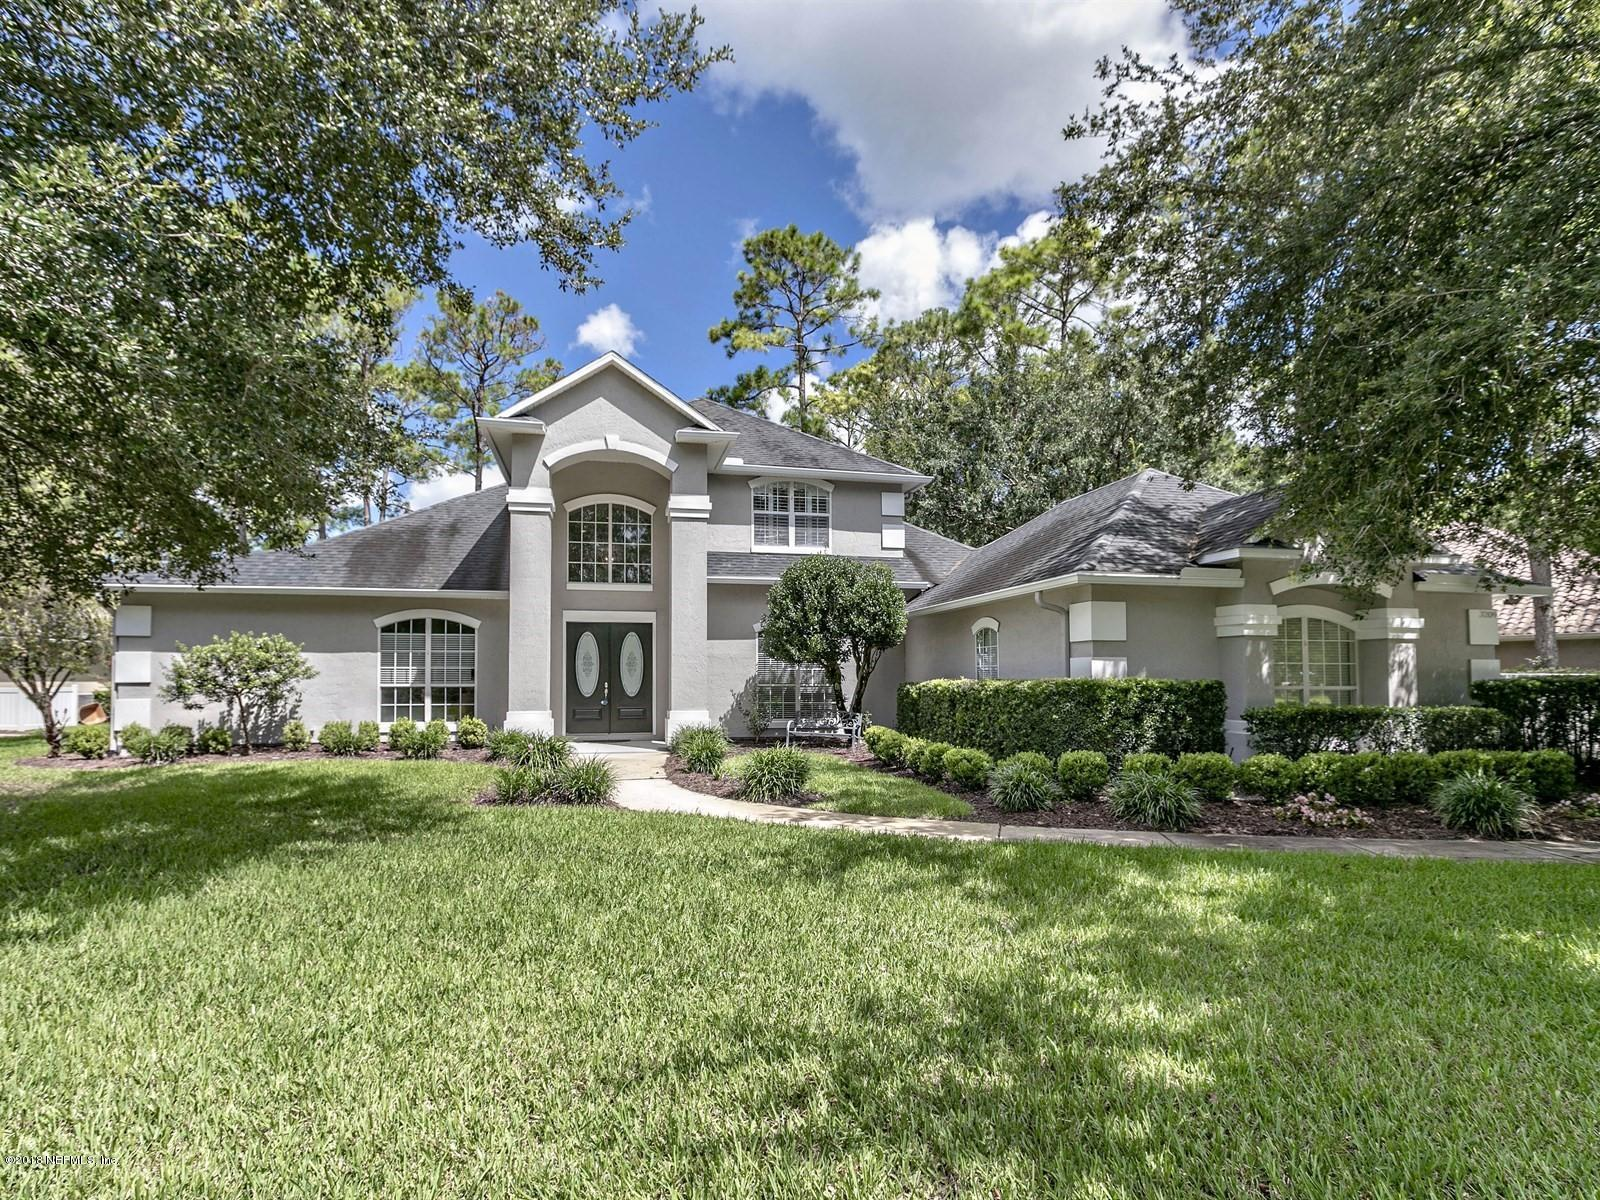 3209 SEQUOYAH, ST JOHNS, FLORIDA 32259, 5 Bedrooms Bedrooms, ,3 BathroomsBathrooms,Residential - single family,For sale,SEQUOYAH,950215